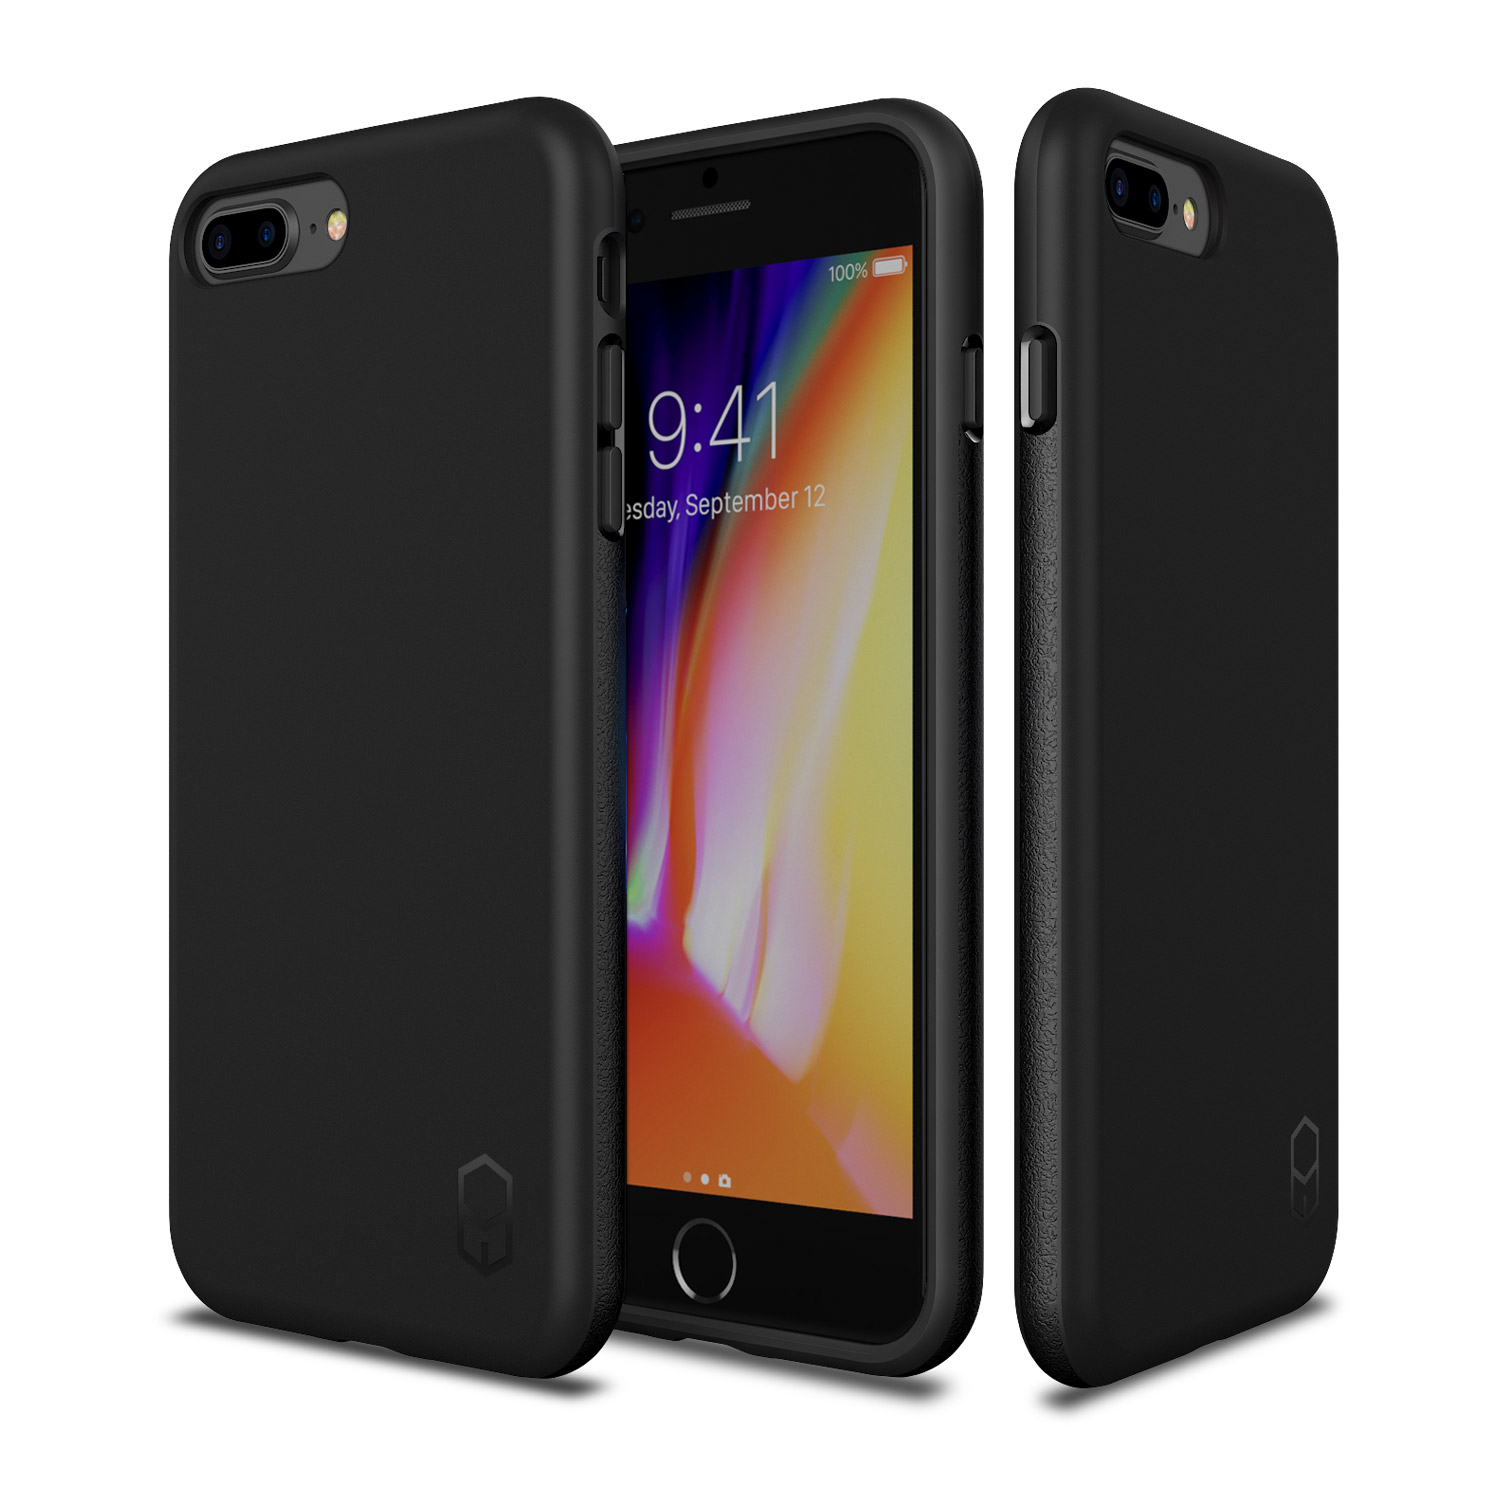 iPhone 8 Plus 7 Plus Case, Patchworks ITG Level Case in [Black] Rough Side Texture Grip Drop Protection Anti-Fingerprint Matte Surface Slim Fit Solid Case for iPhone 8 Plus (2017) iPhone 7 Plus (2016)